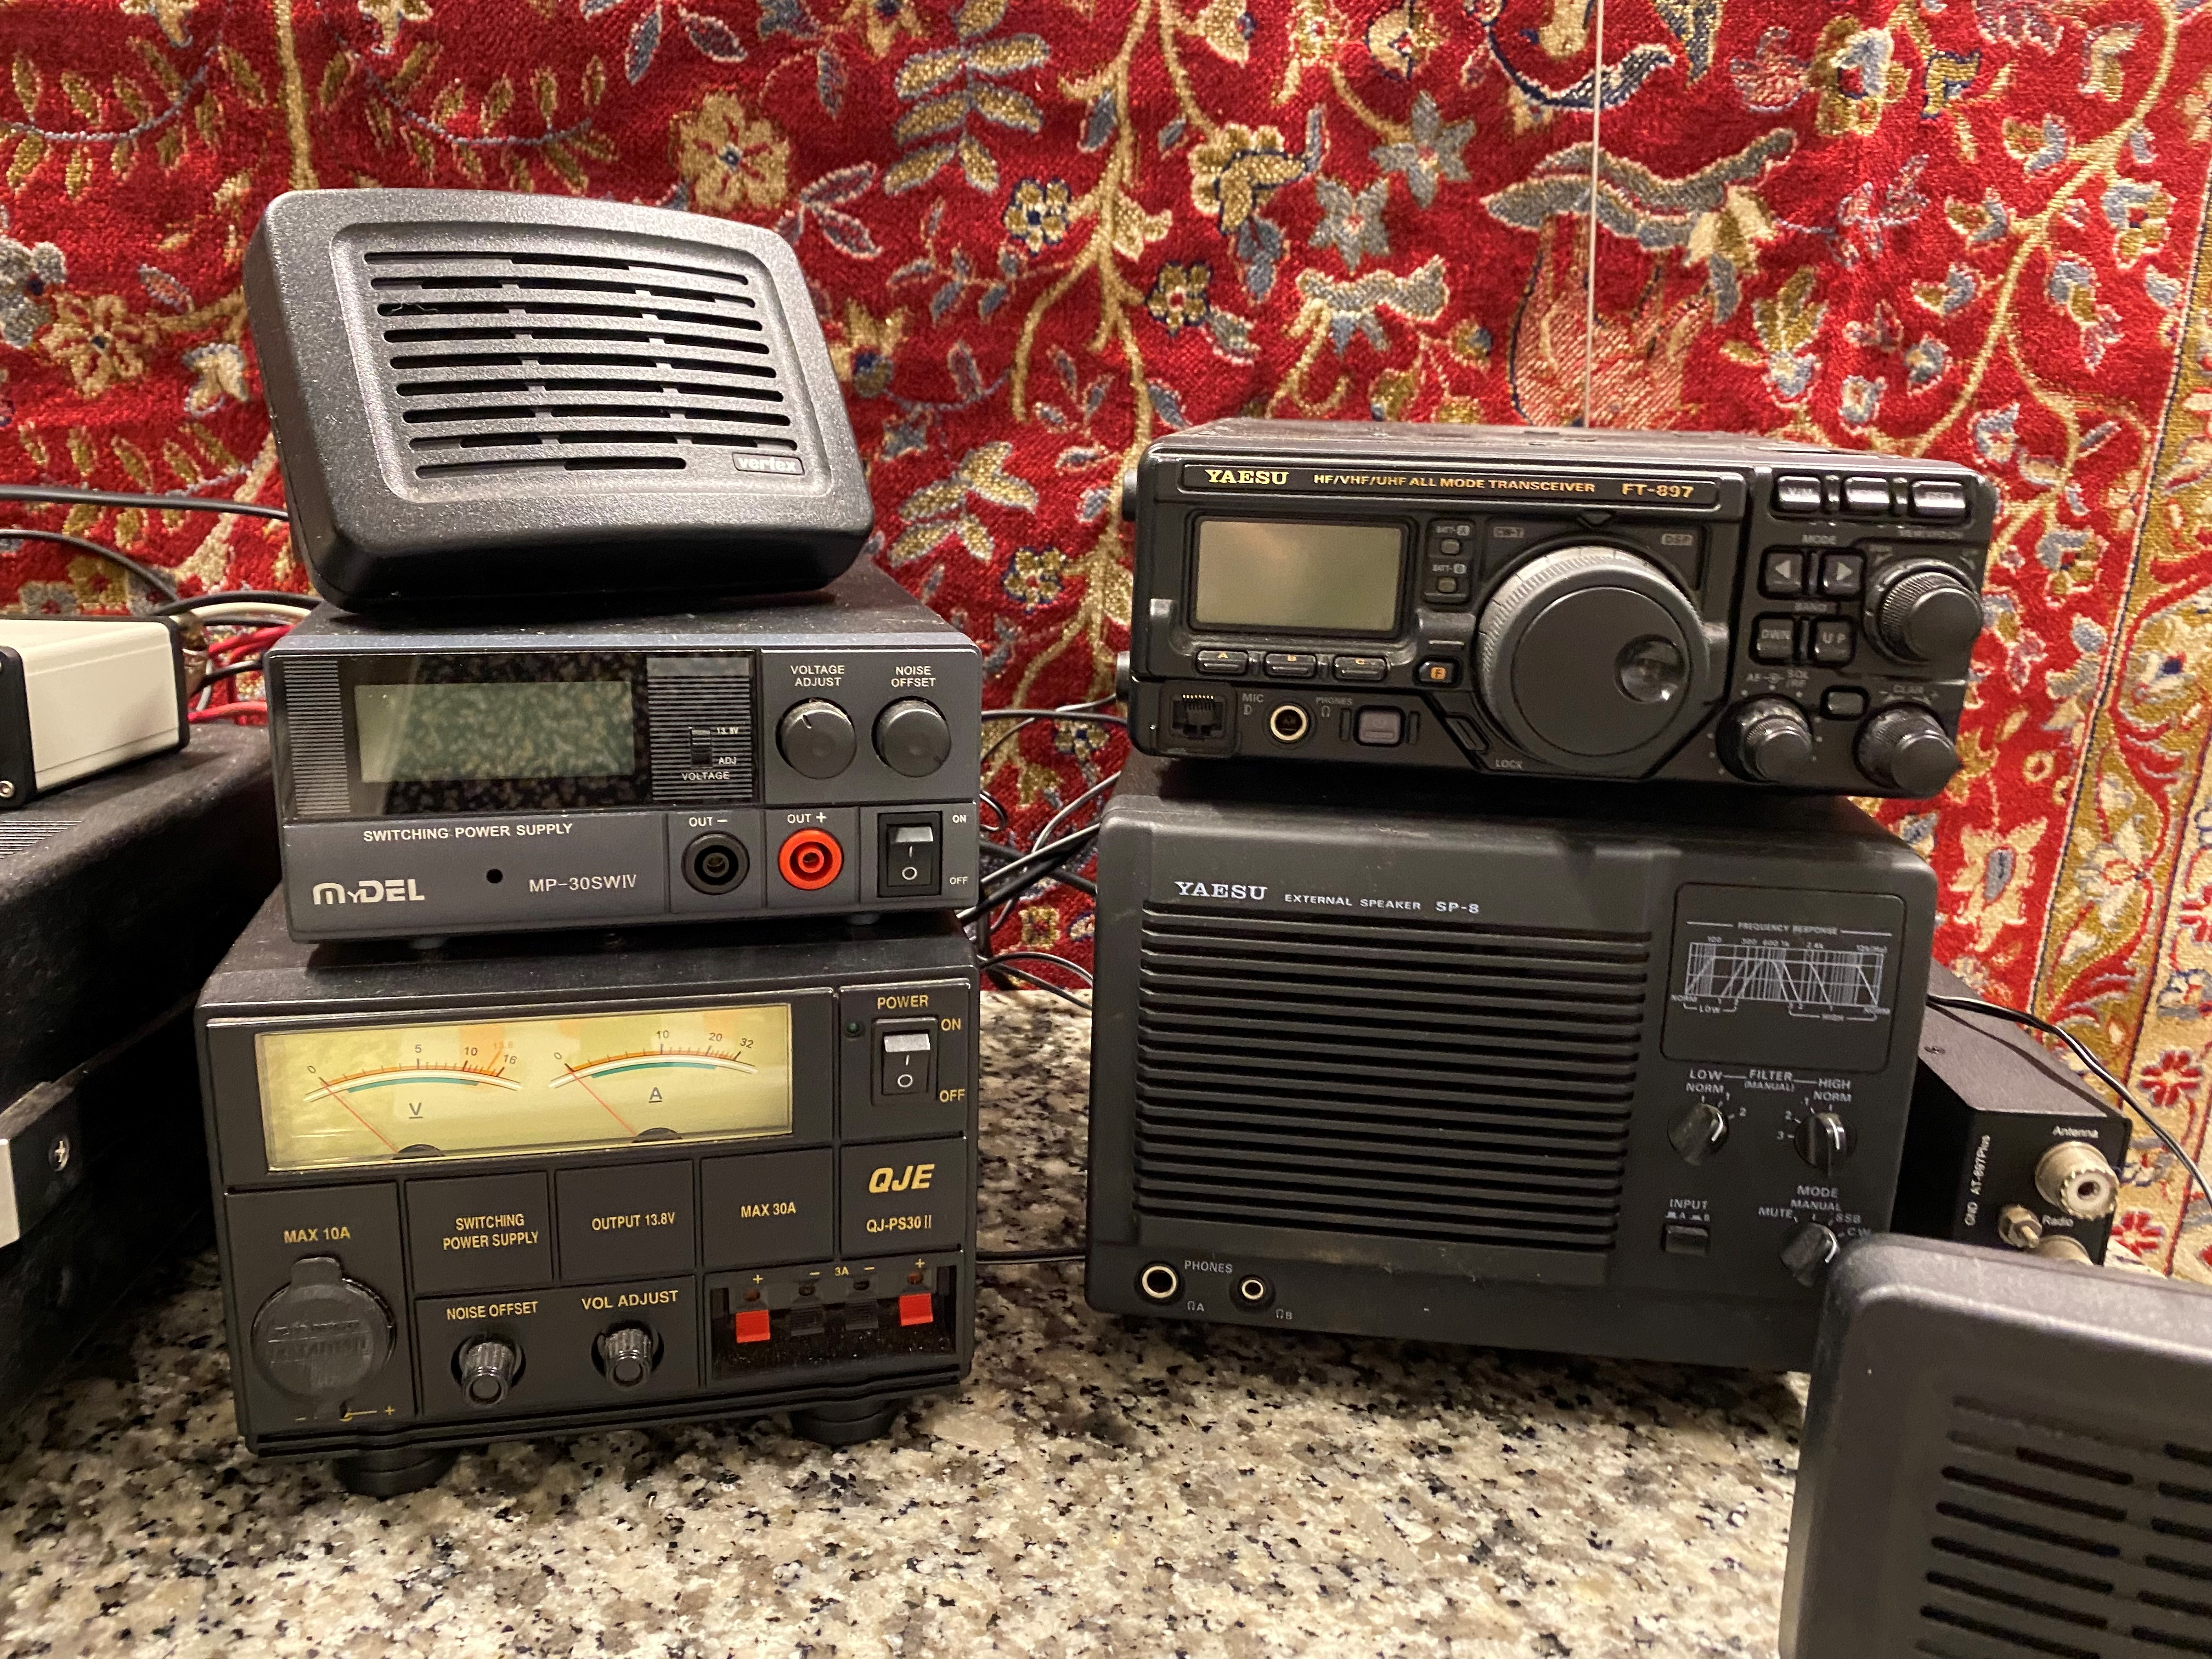 A collection of amateur 'ham' radio equipment, comprising: a Yaesu FTDX 3000 transceiver, an ATU 897 - Image 6 of 13